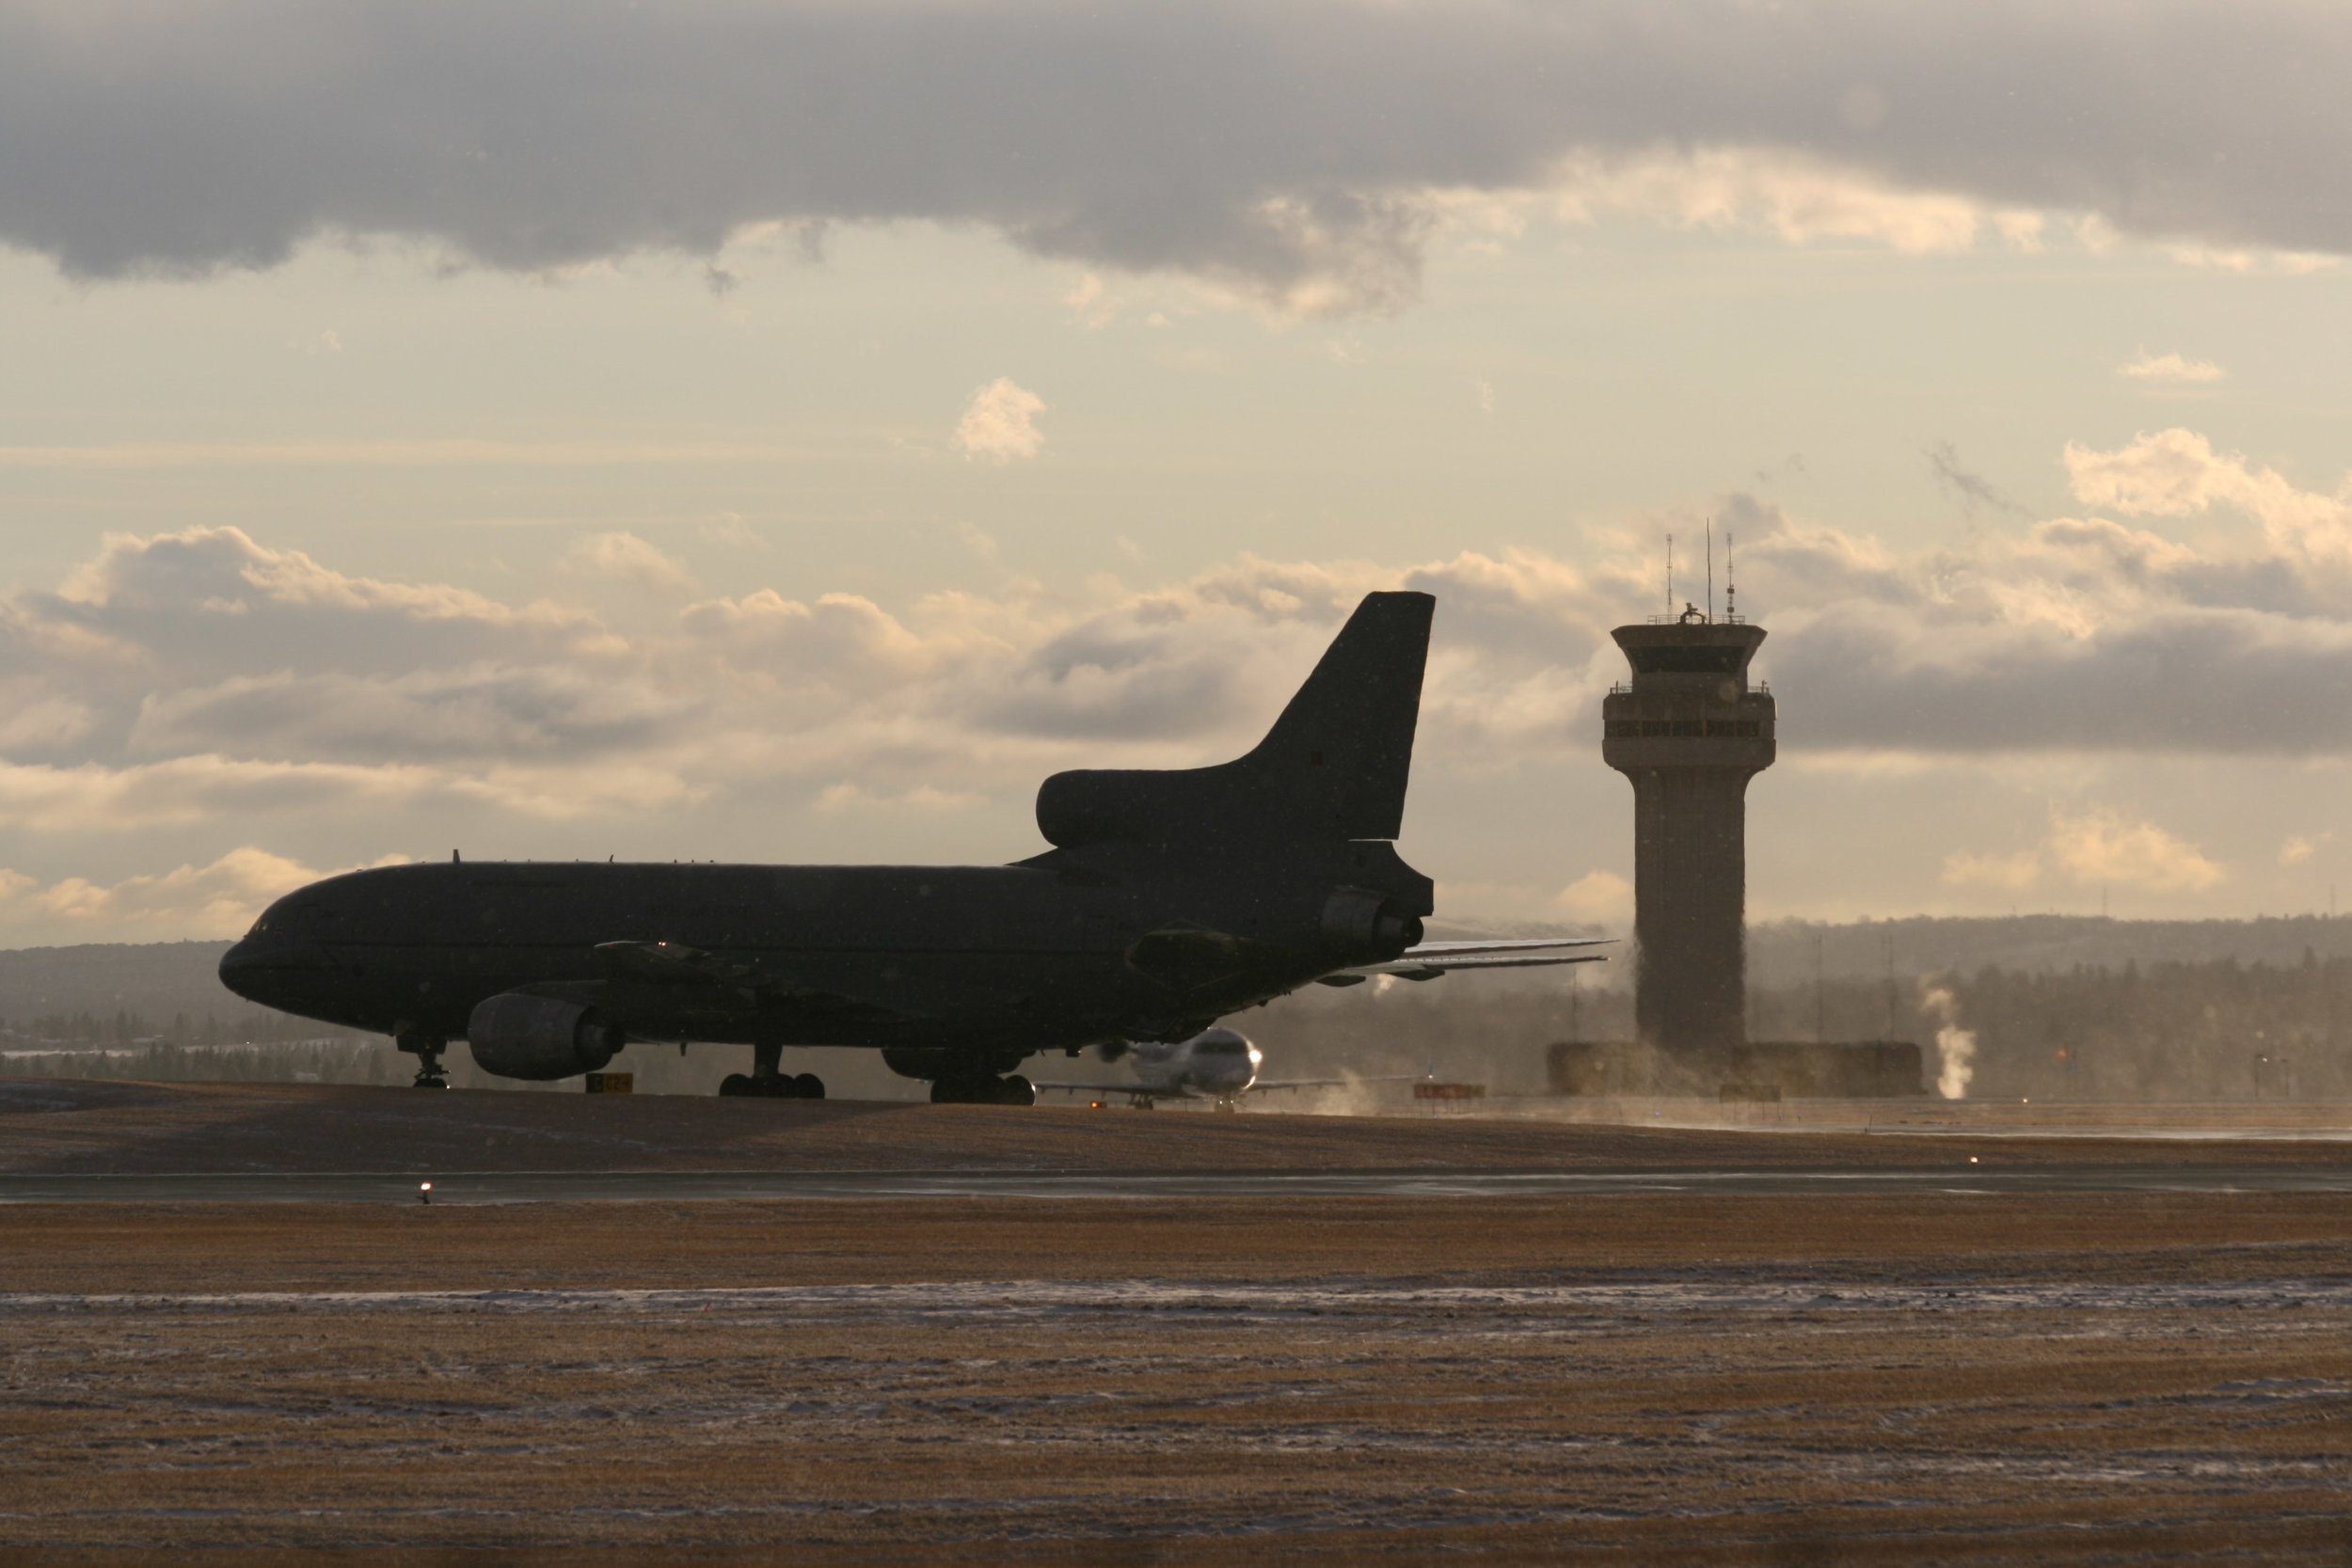 RCAF departing from YYC